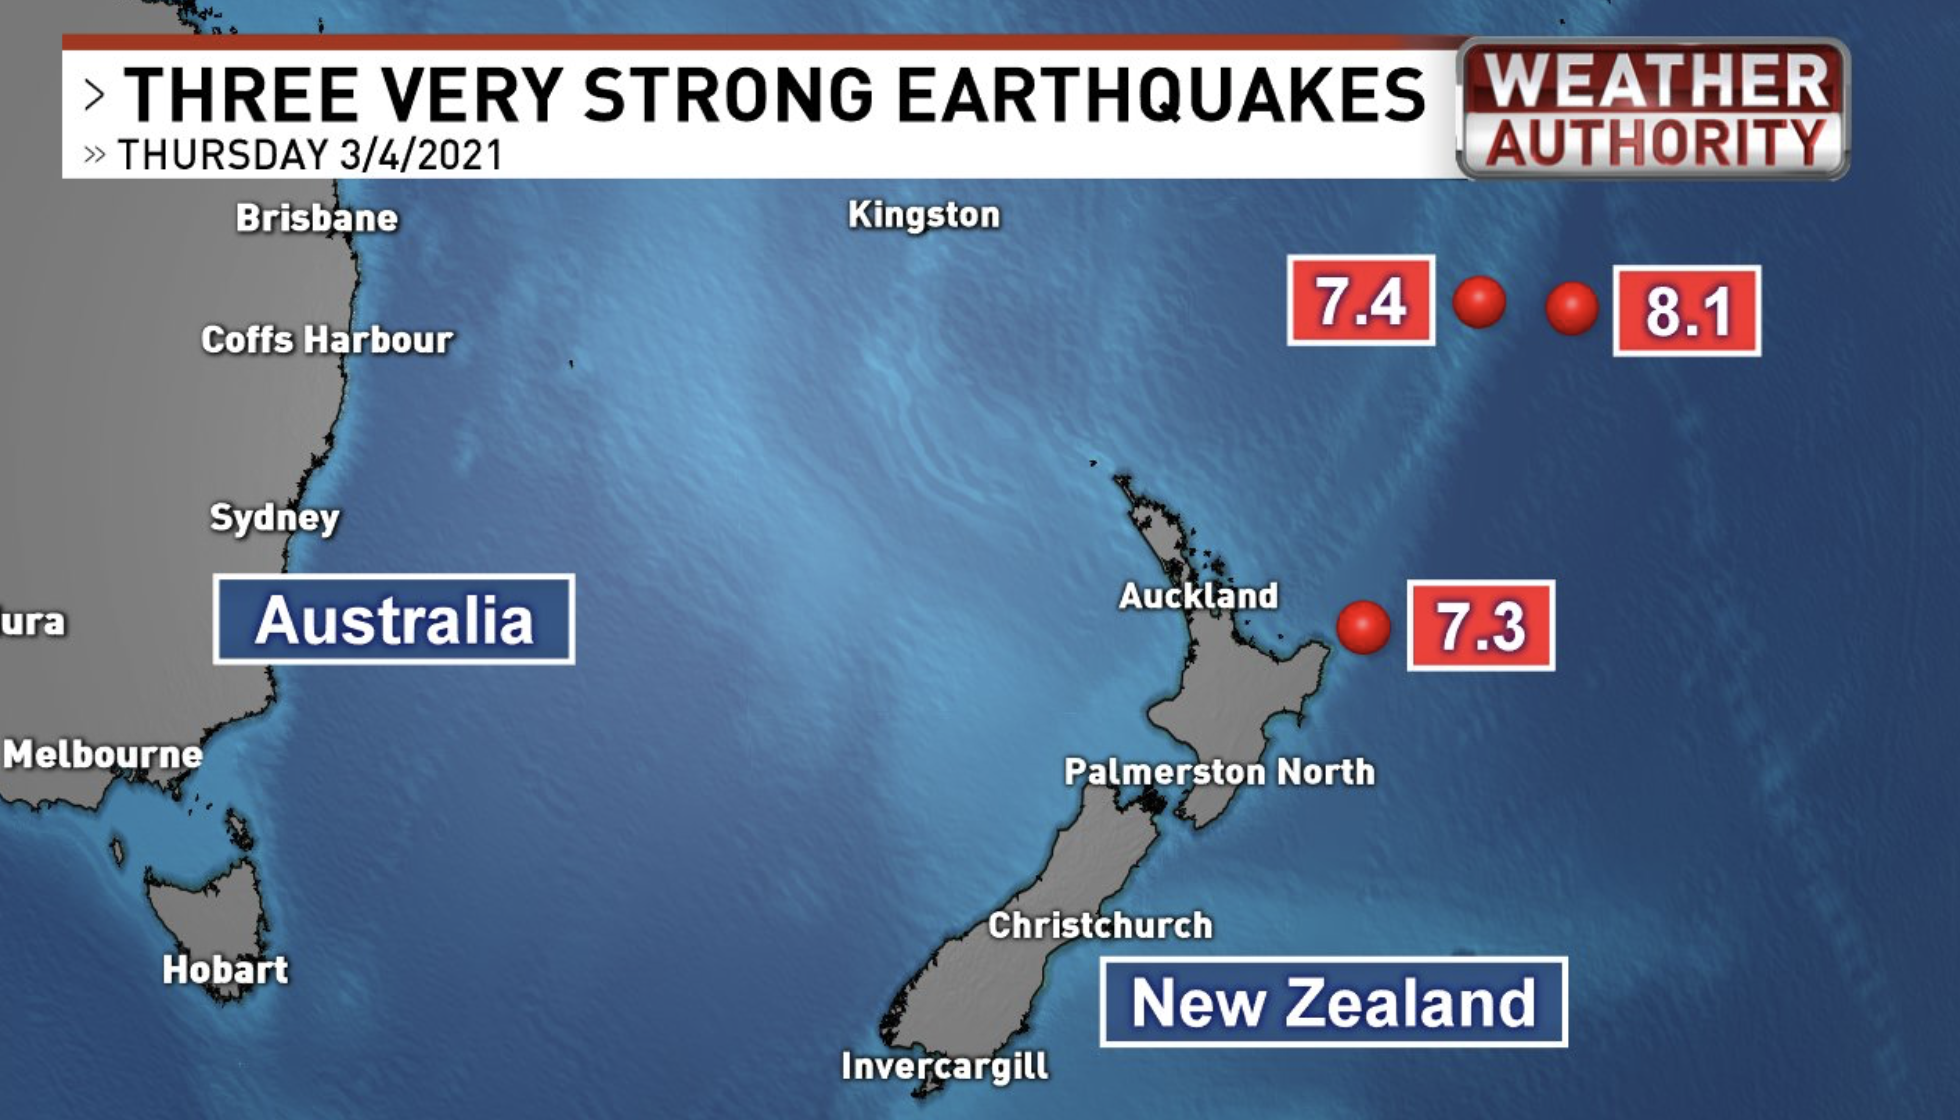 Large earthquakes rock New Zealand. Tsunami warnings issued